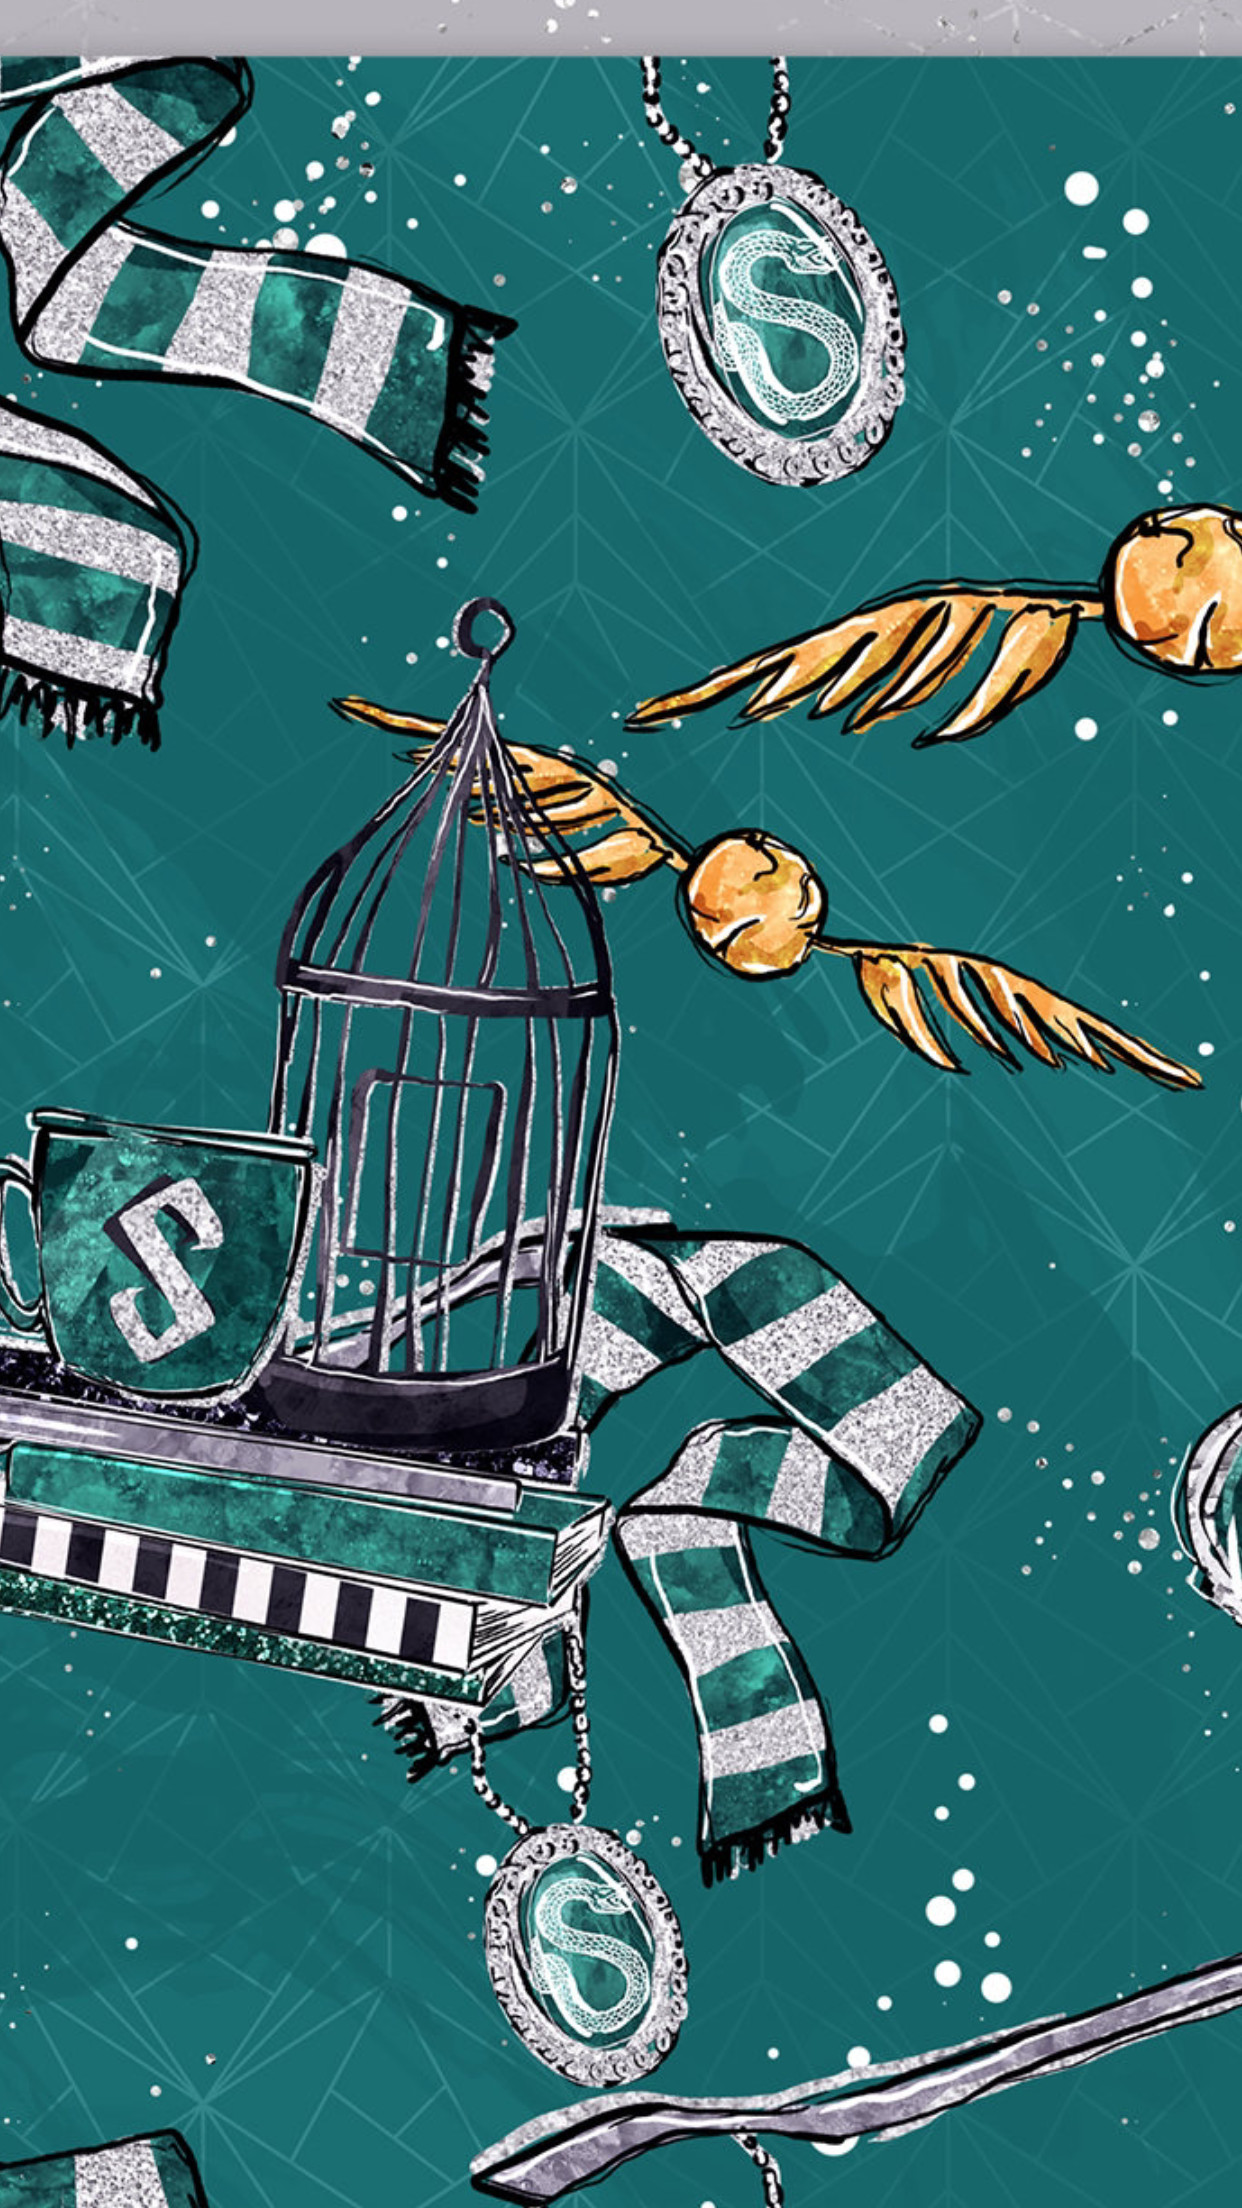 Harry Potter Slytherin Wallpaper Posted By Ethan Anderson